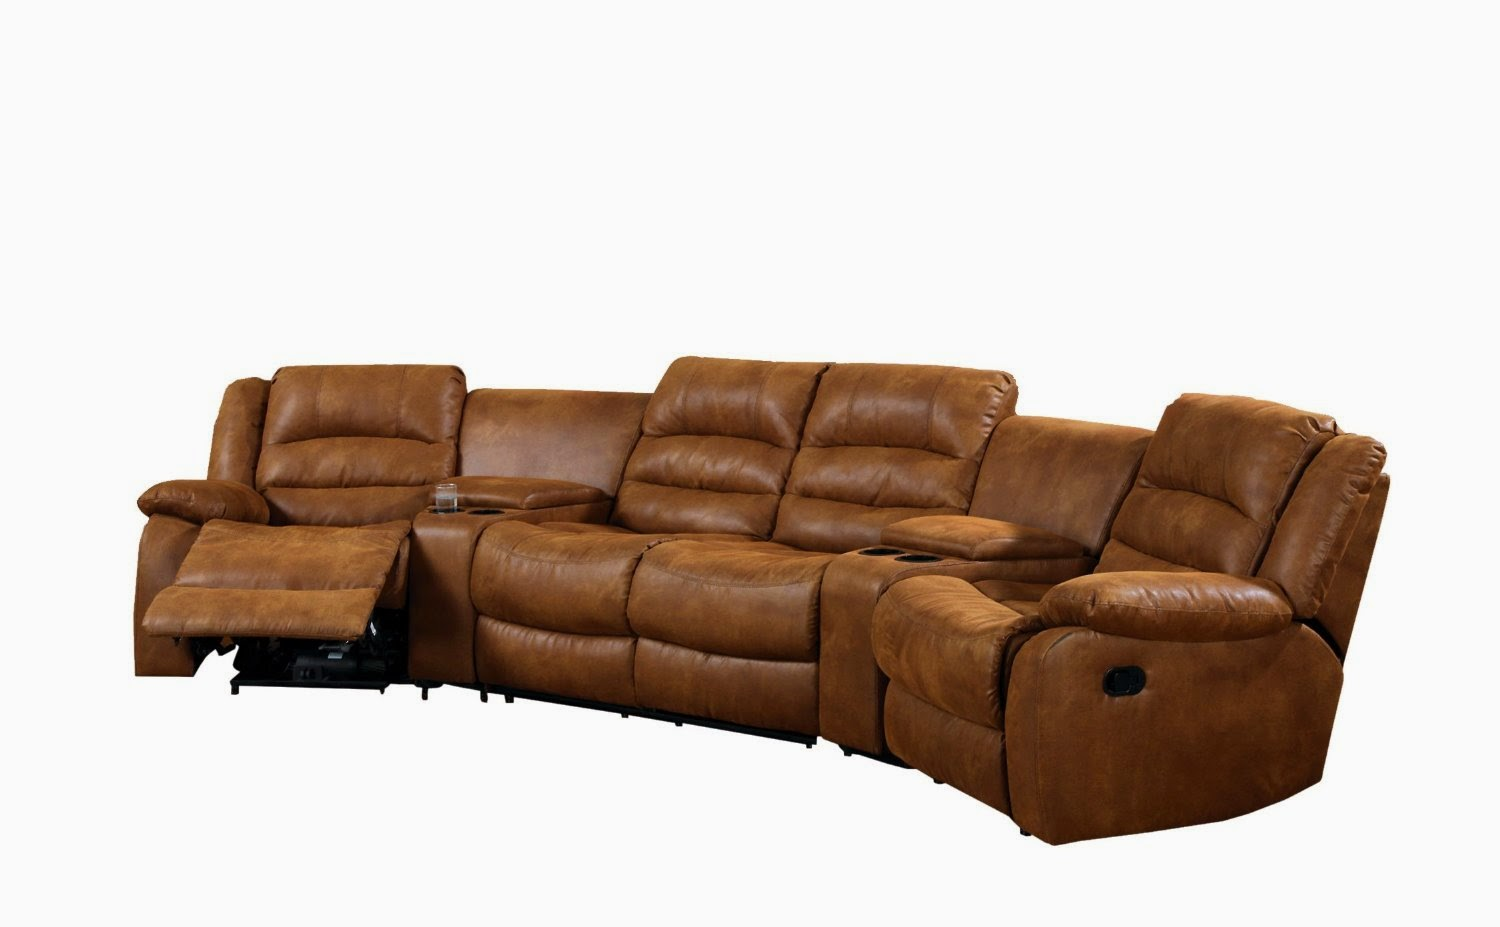 Cheap Recliner Sofas For Sale Contemporary Reclining Sofa Sectional